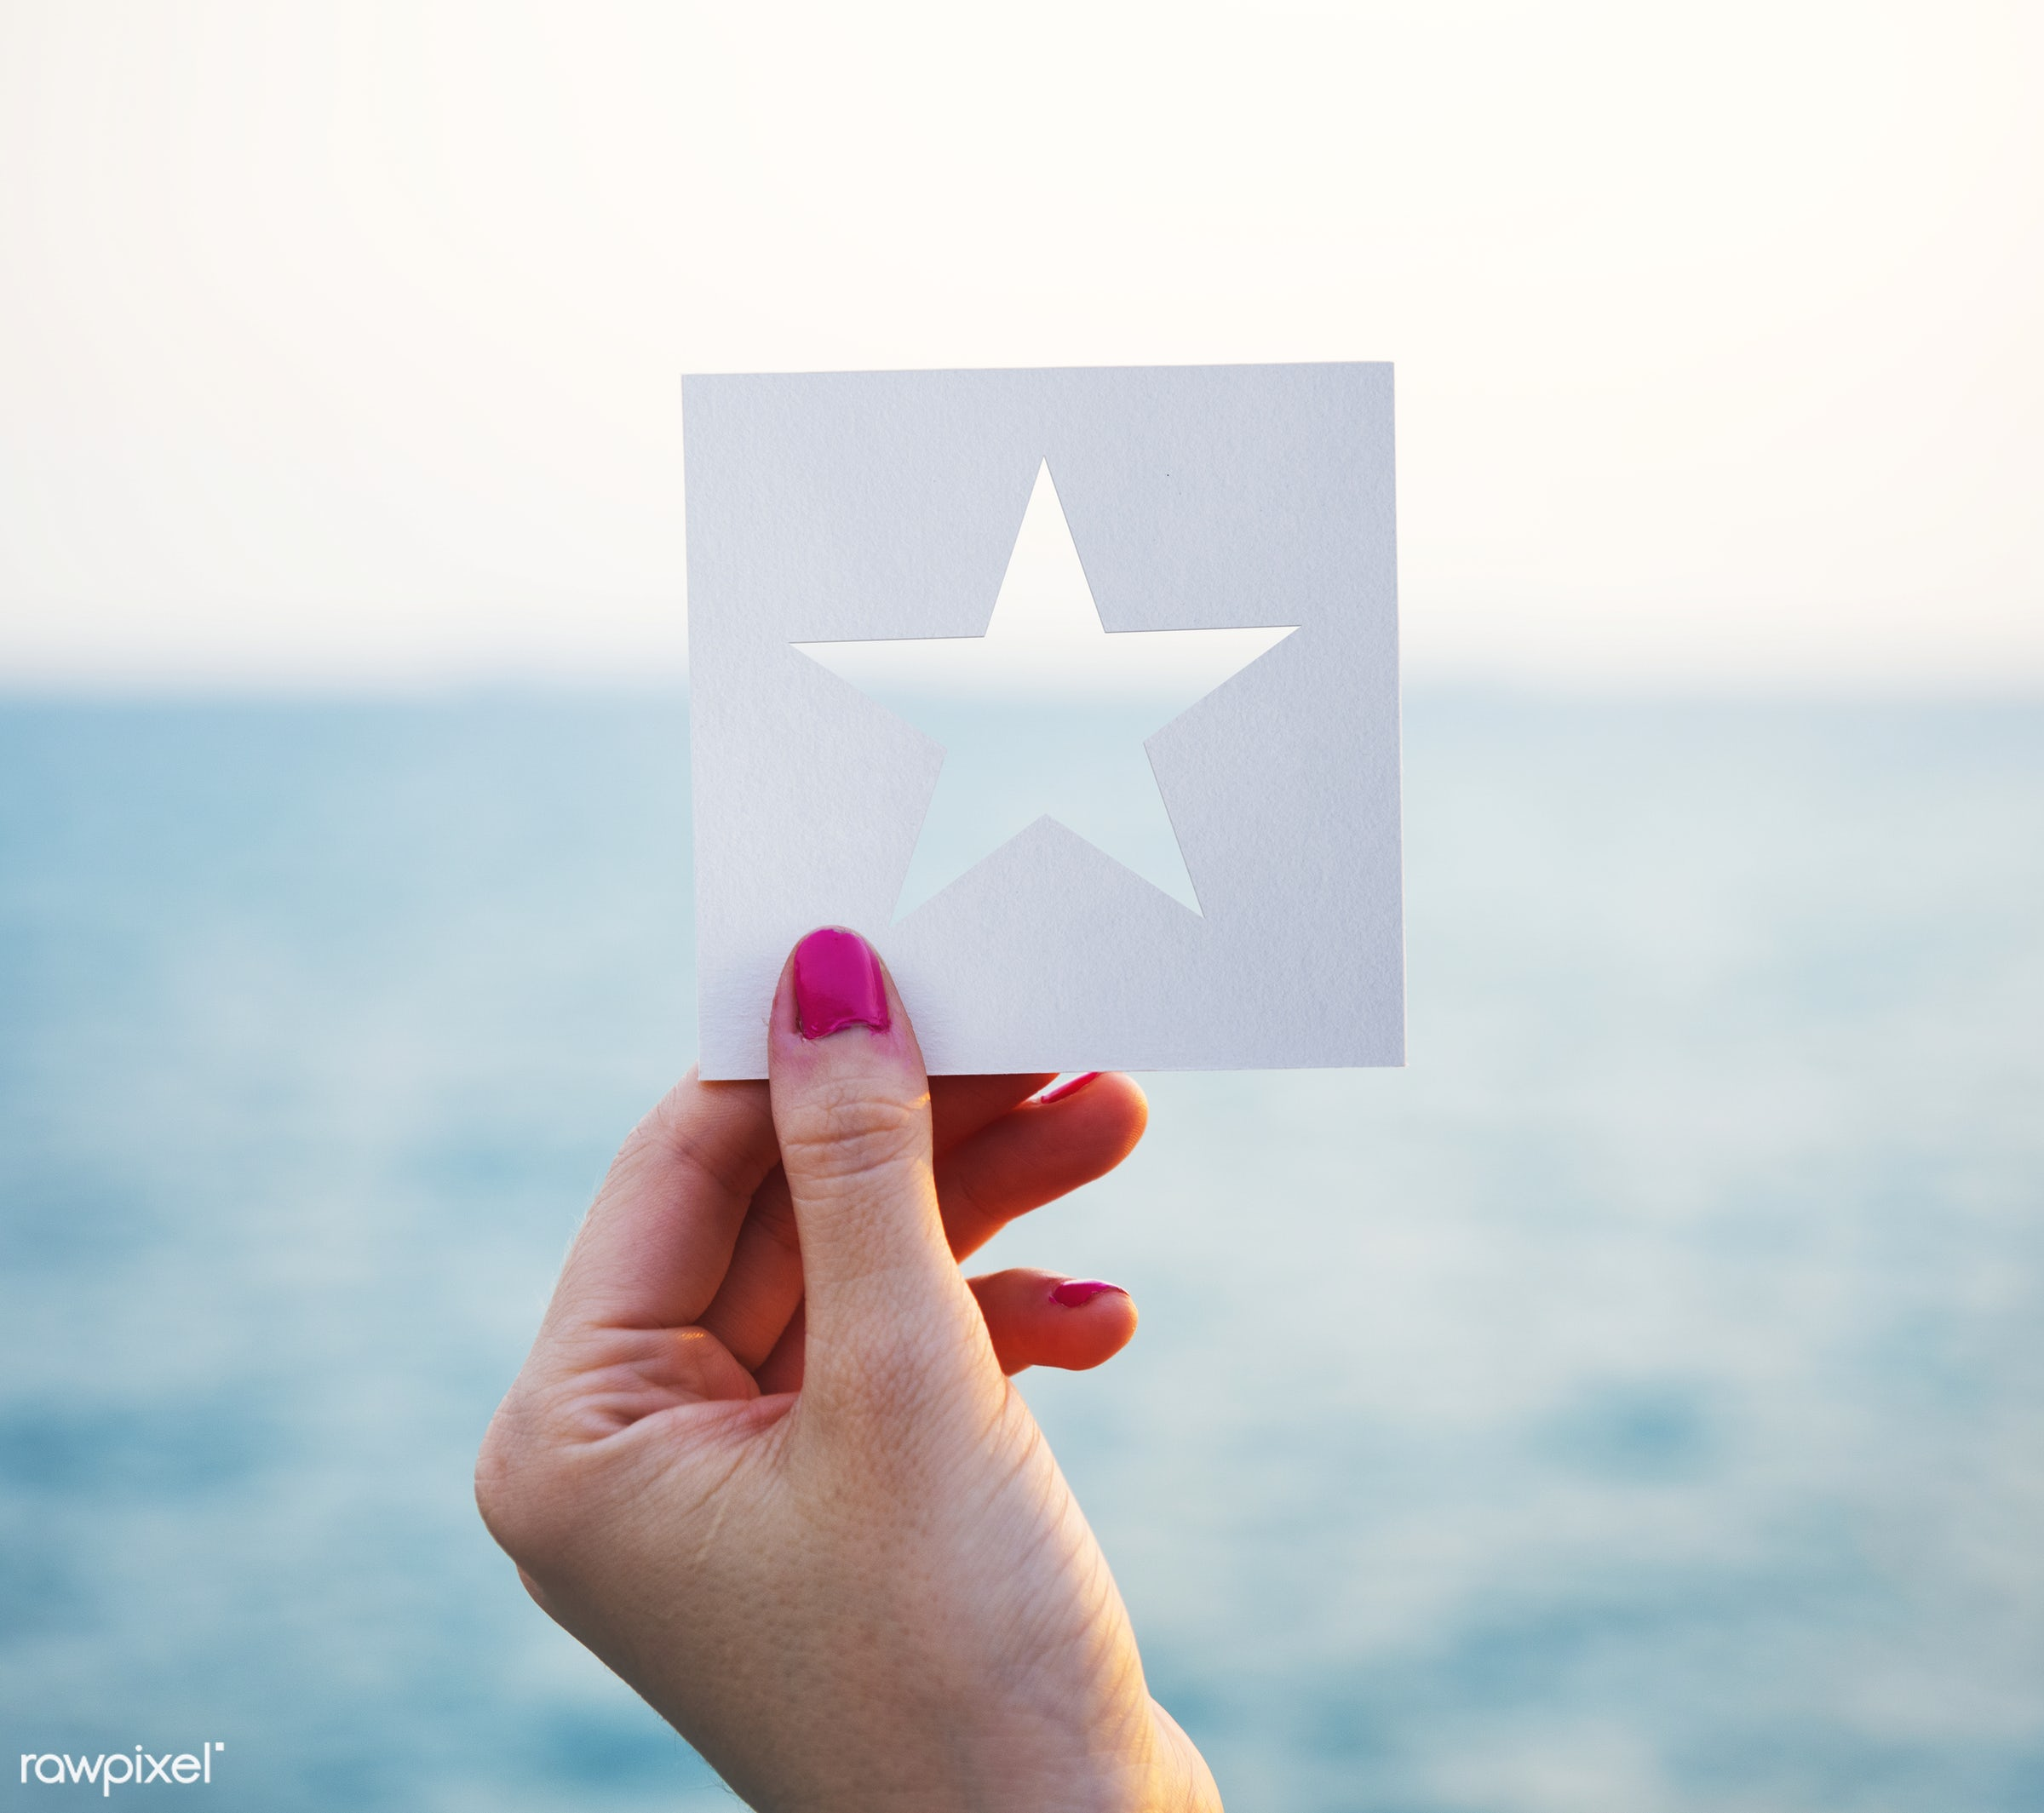 shore, craft, holding, paper, tranquil scene, ocean, travel, beach, recreation, hand, water, abstract, icon, paper craft,...